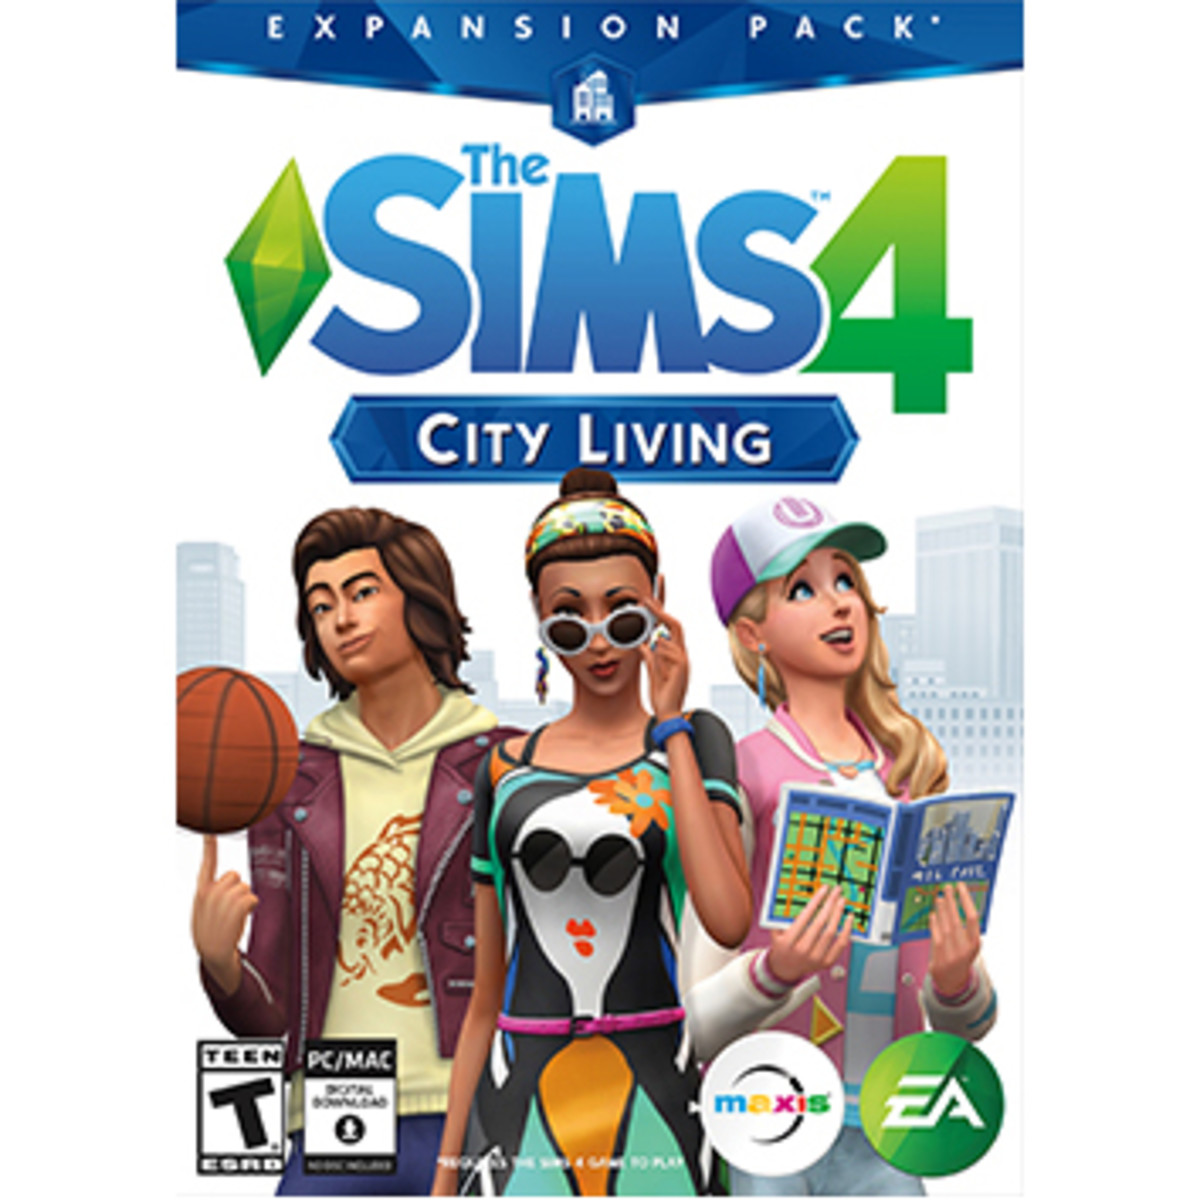 """The Sims 4: City Living"" Expansion Pack Review"